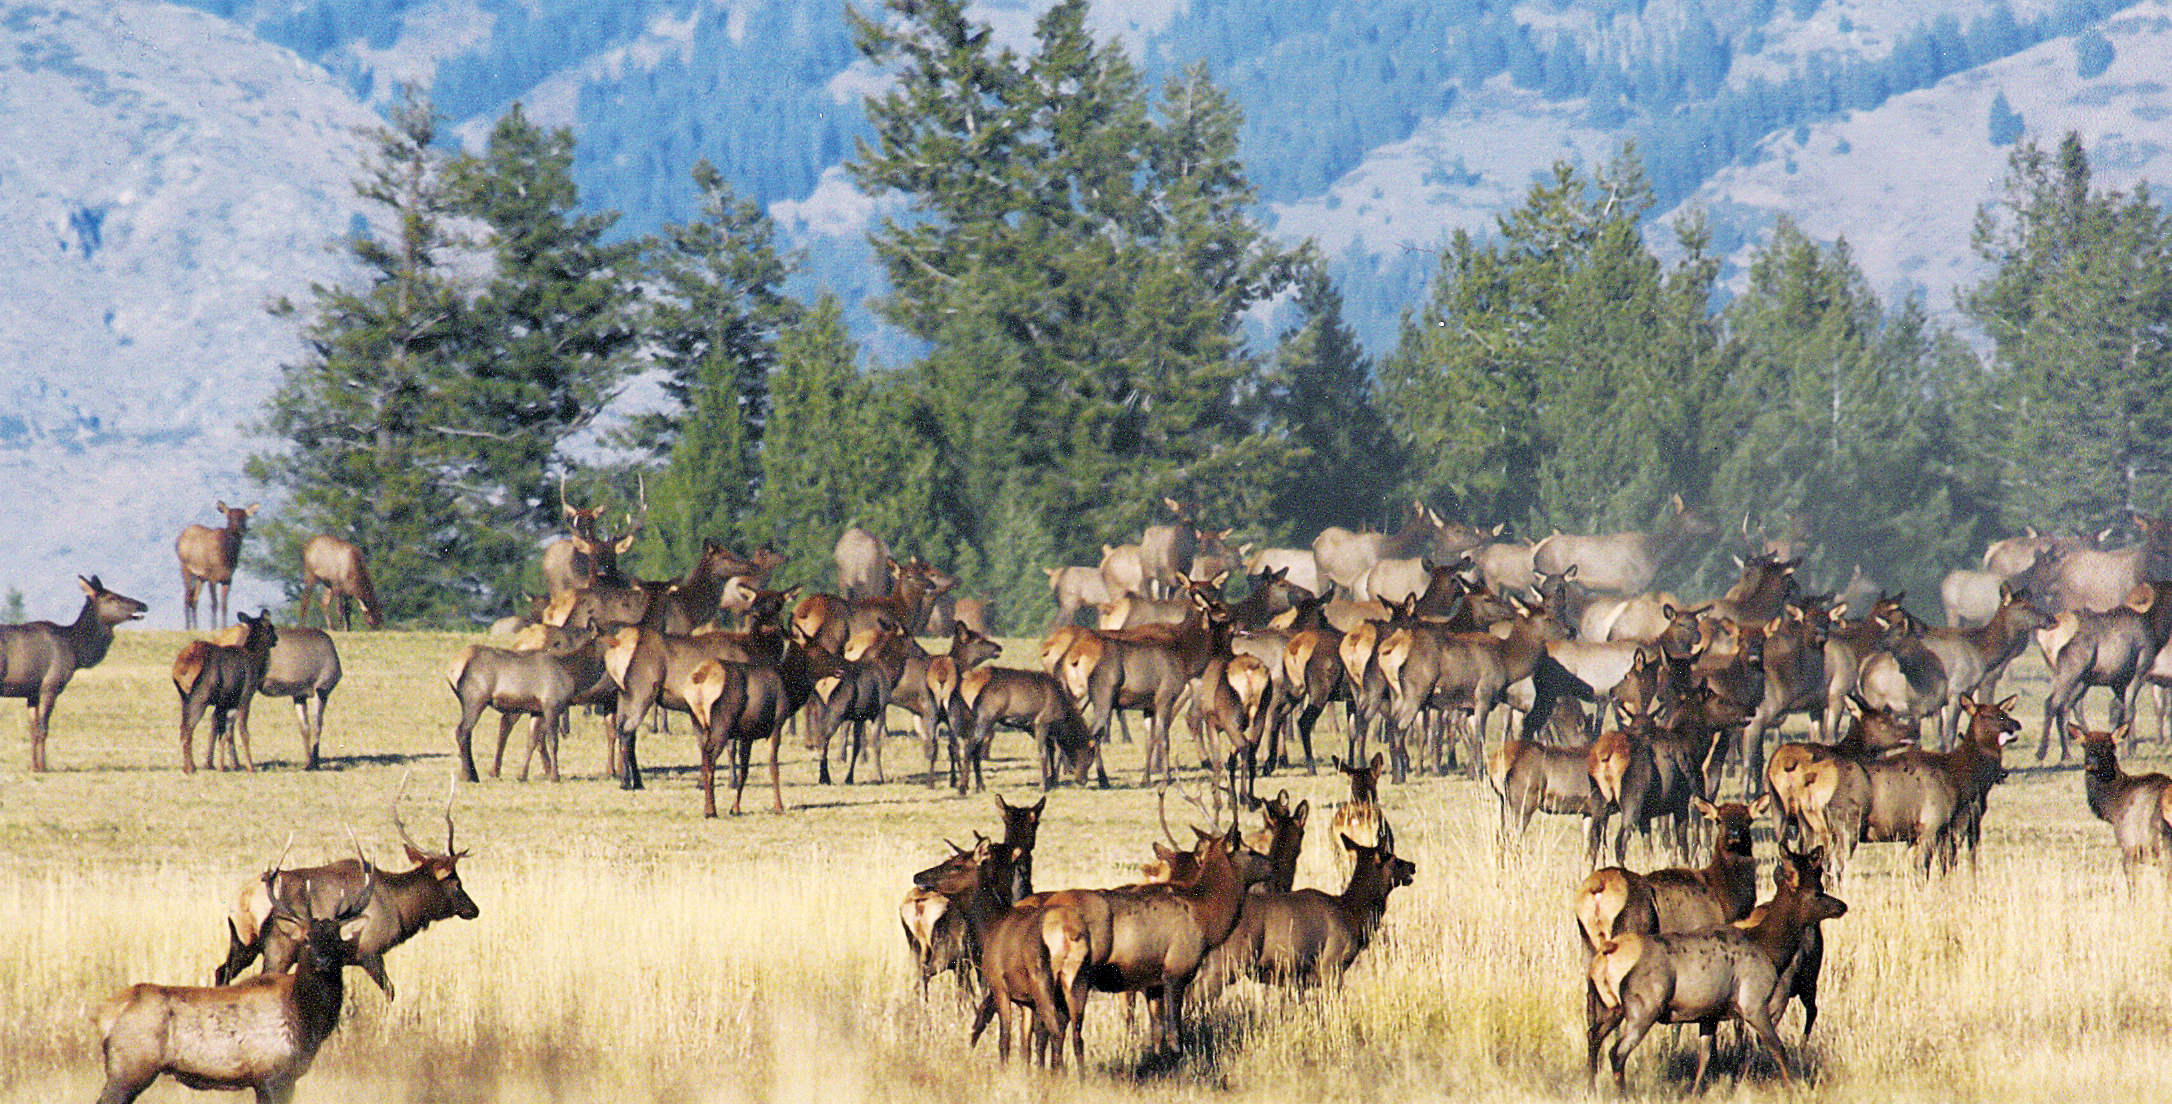 large herd of elk medium shot March 2011